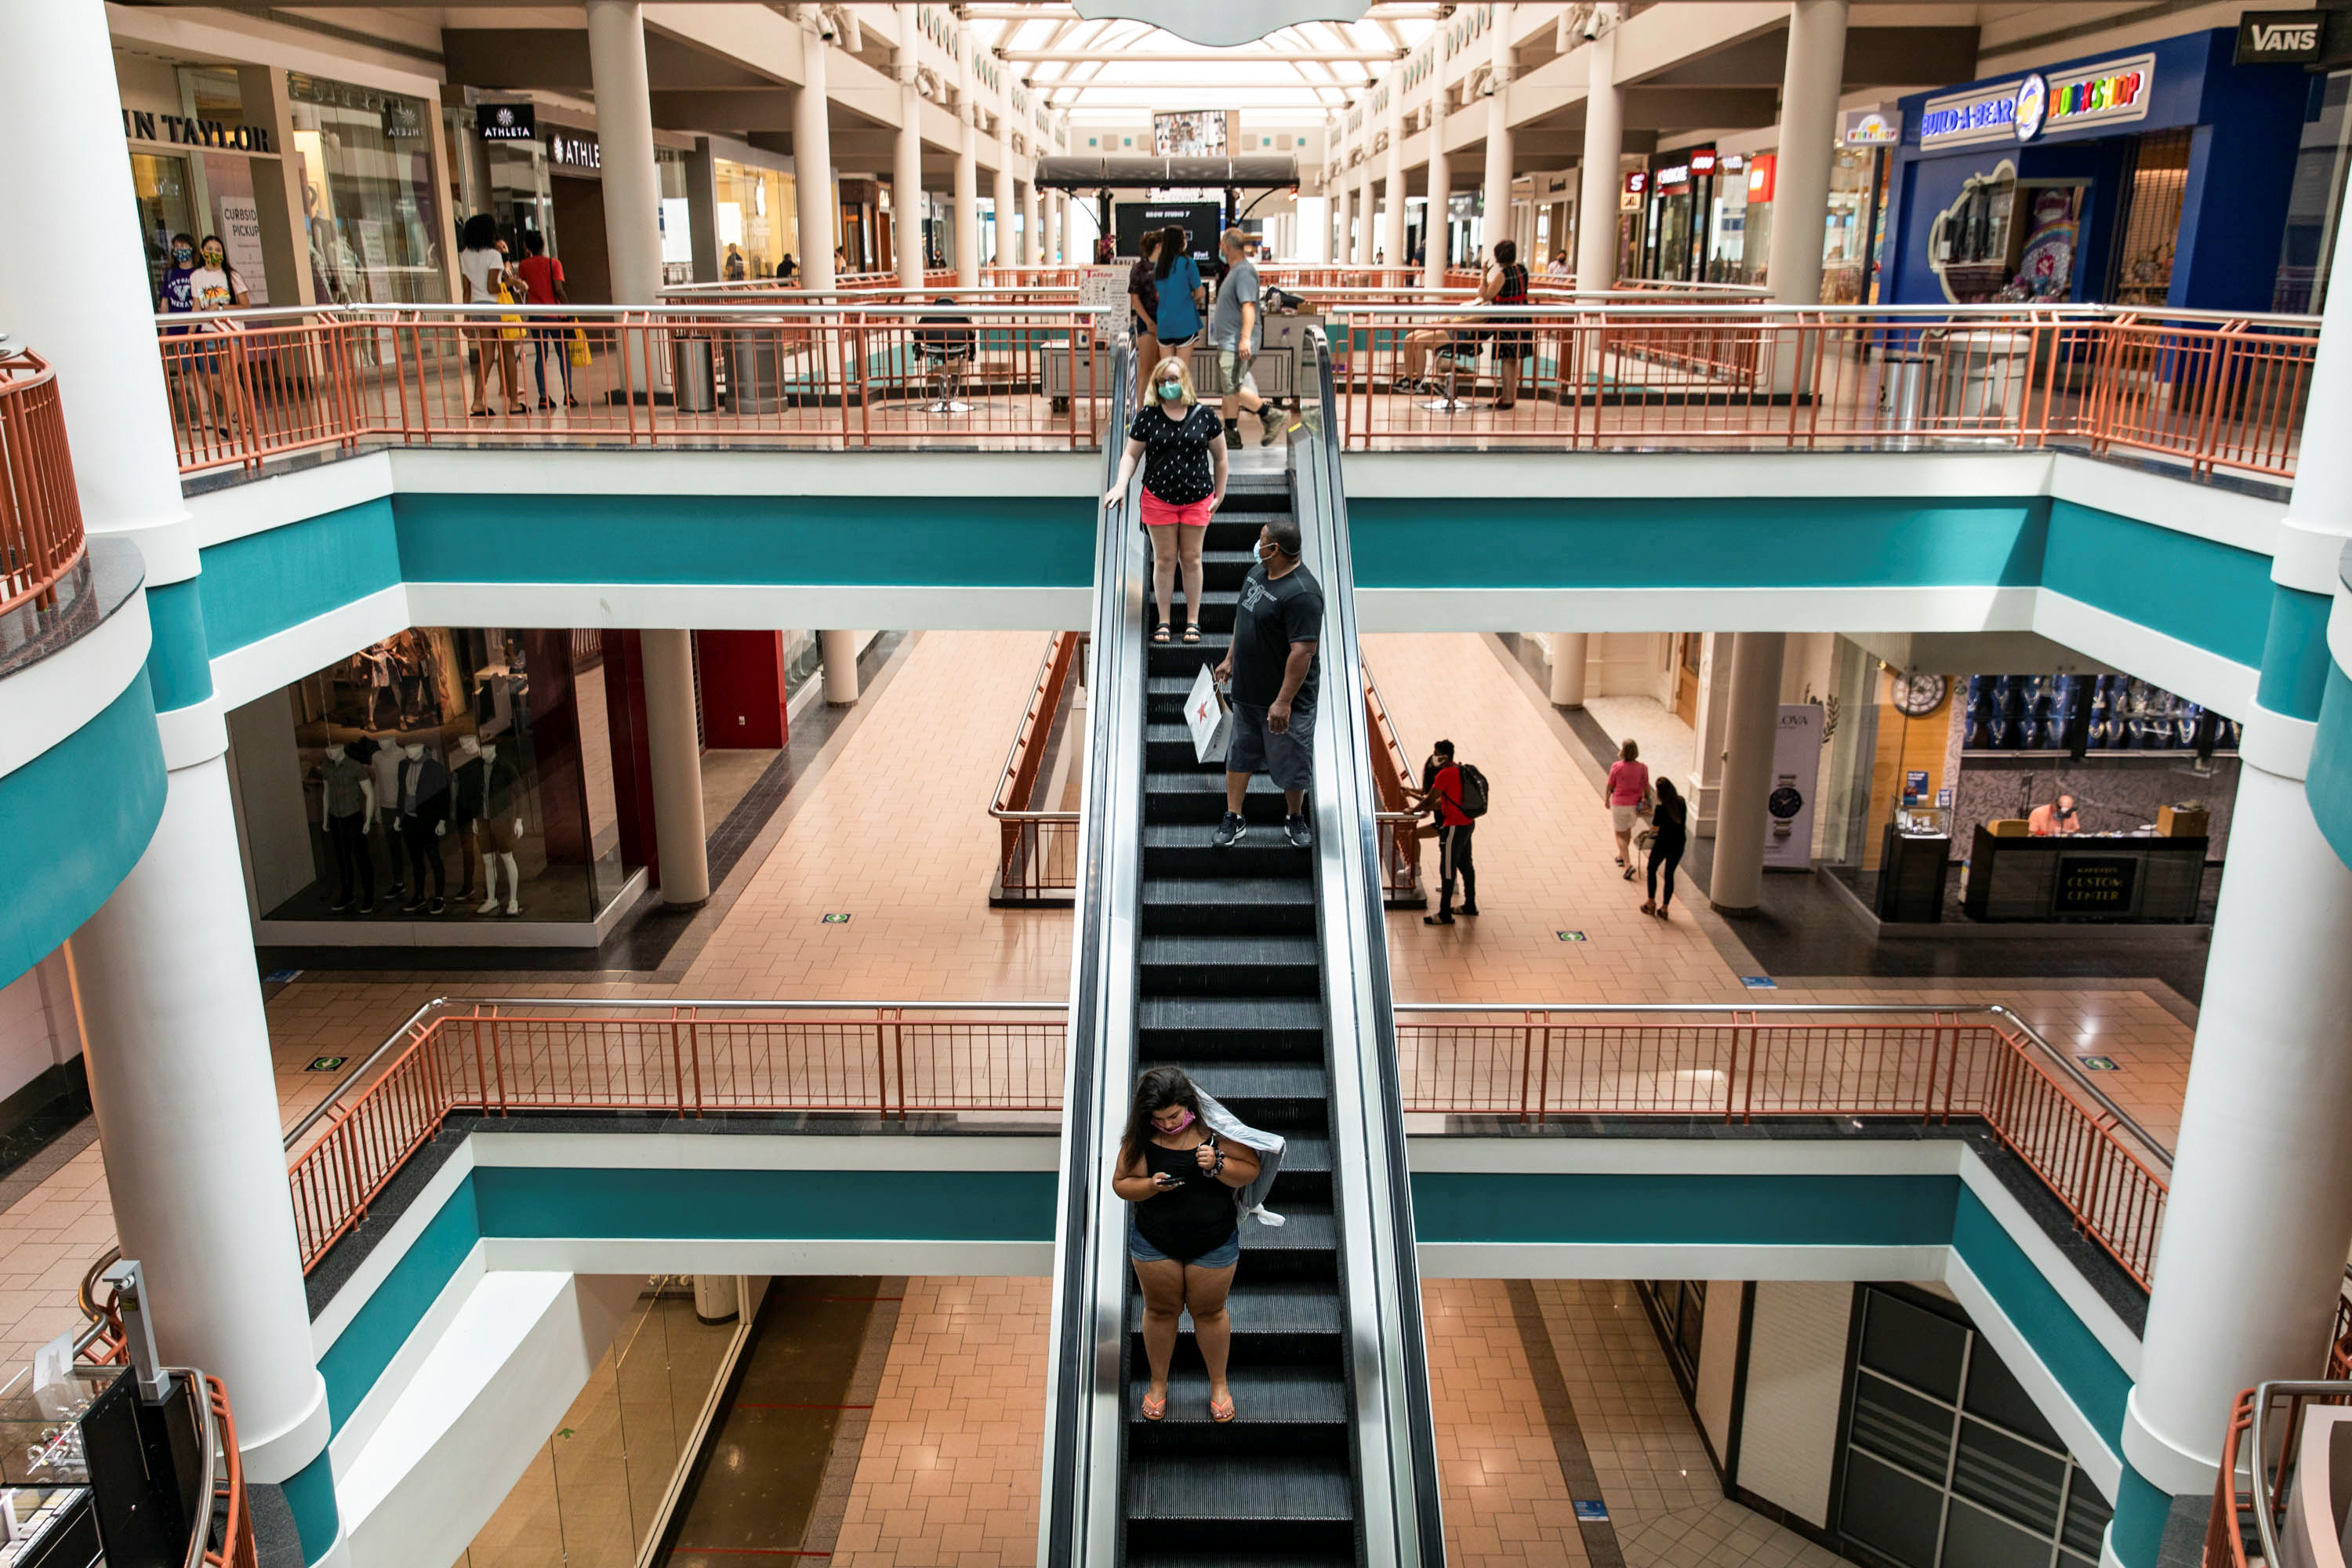 Destiny USA mall reopens as the coronavirus disease (COVID-19) restrictions are eased in Syracuse, New York, U.S., July 10, 2020.  REUTERS/Maranie Staab - RC2OQH9YDL6M